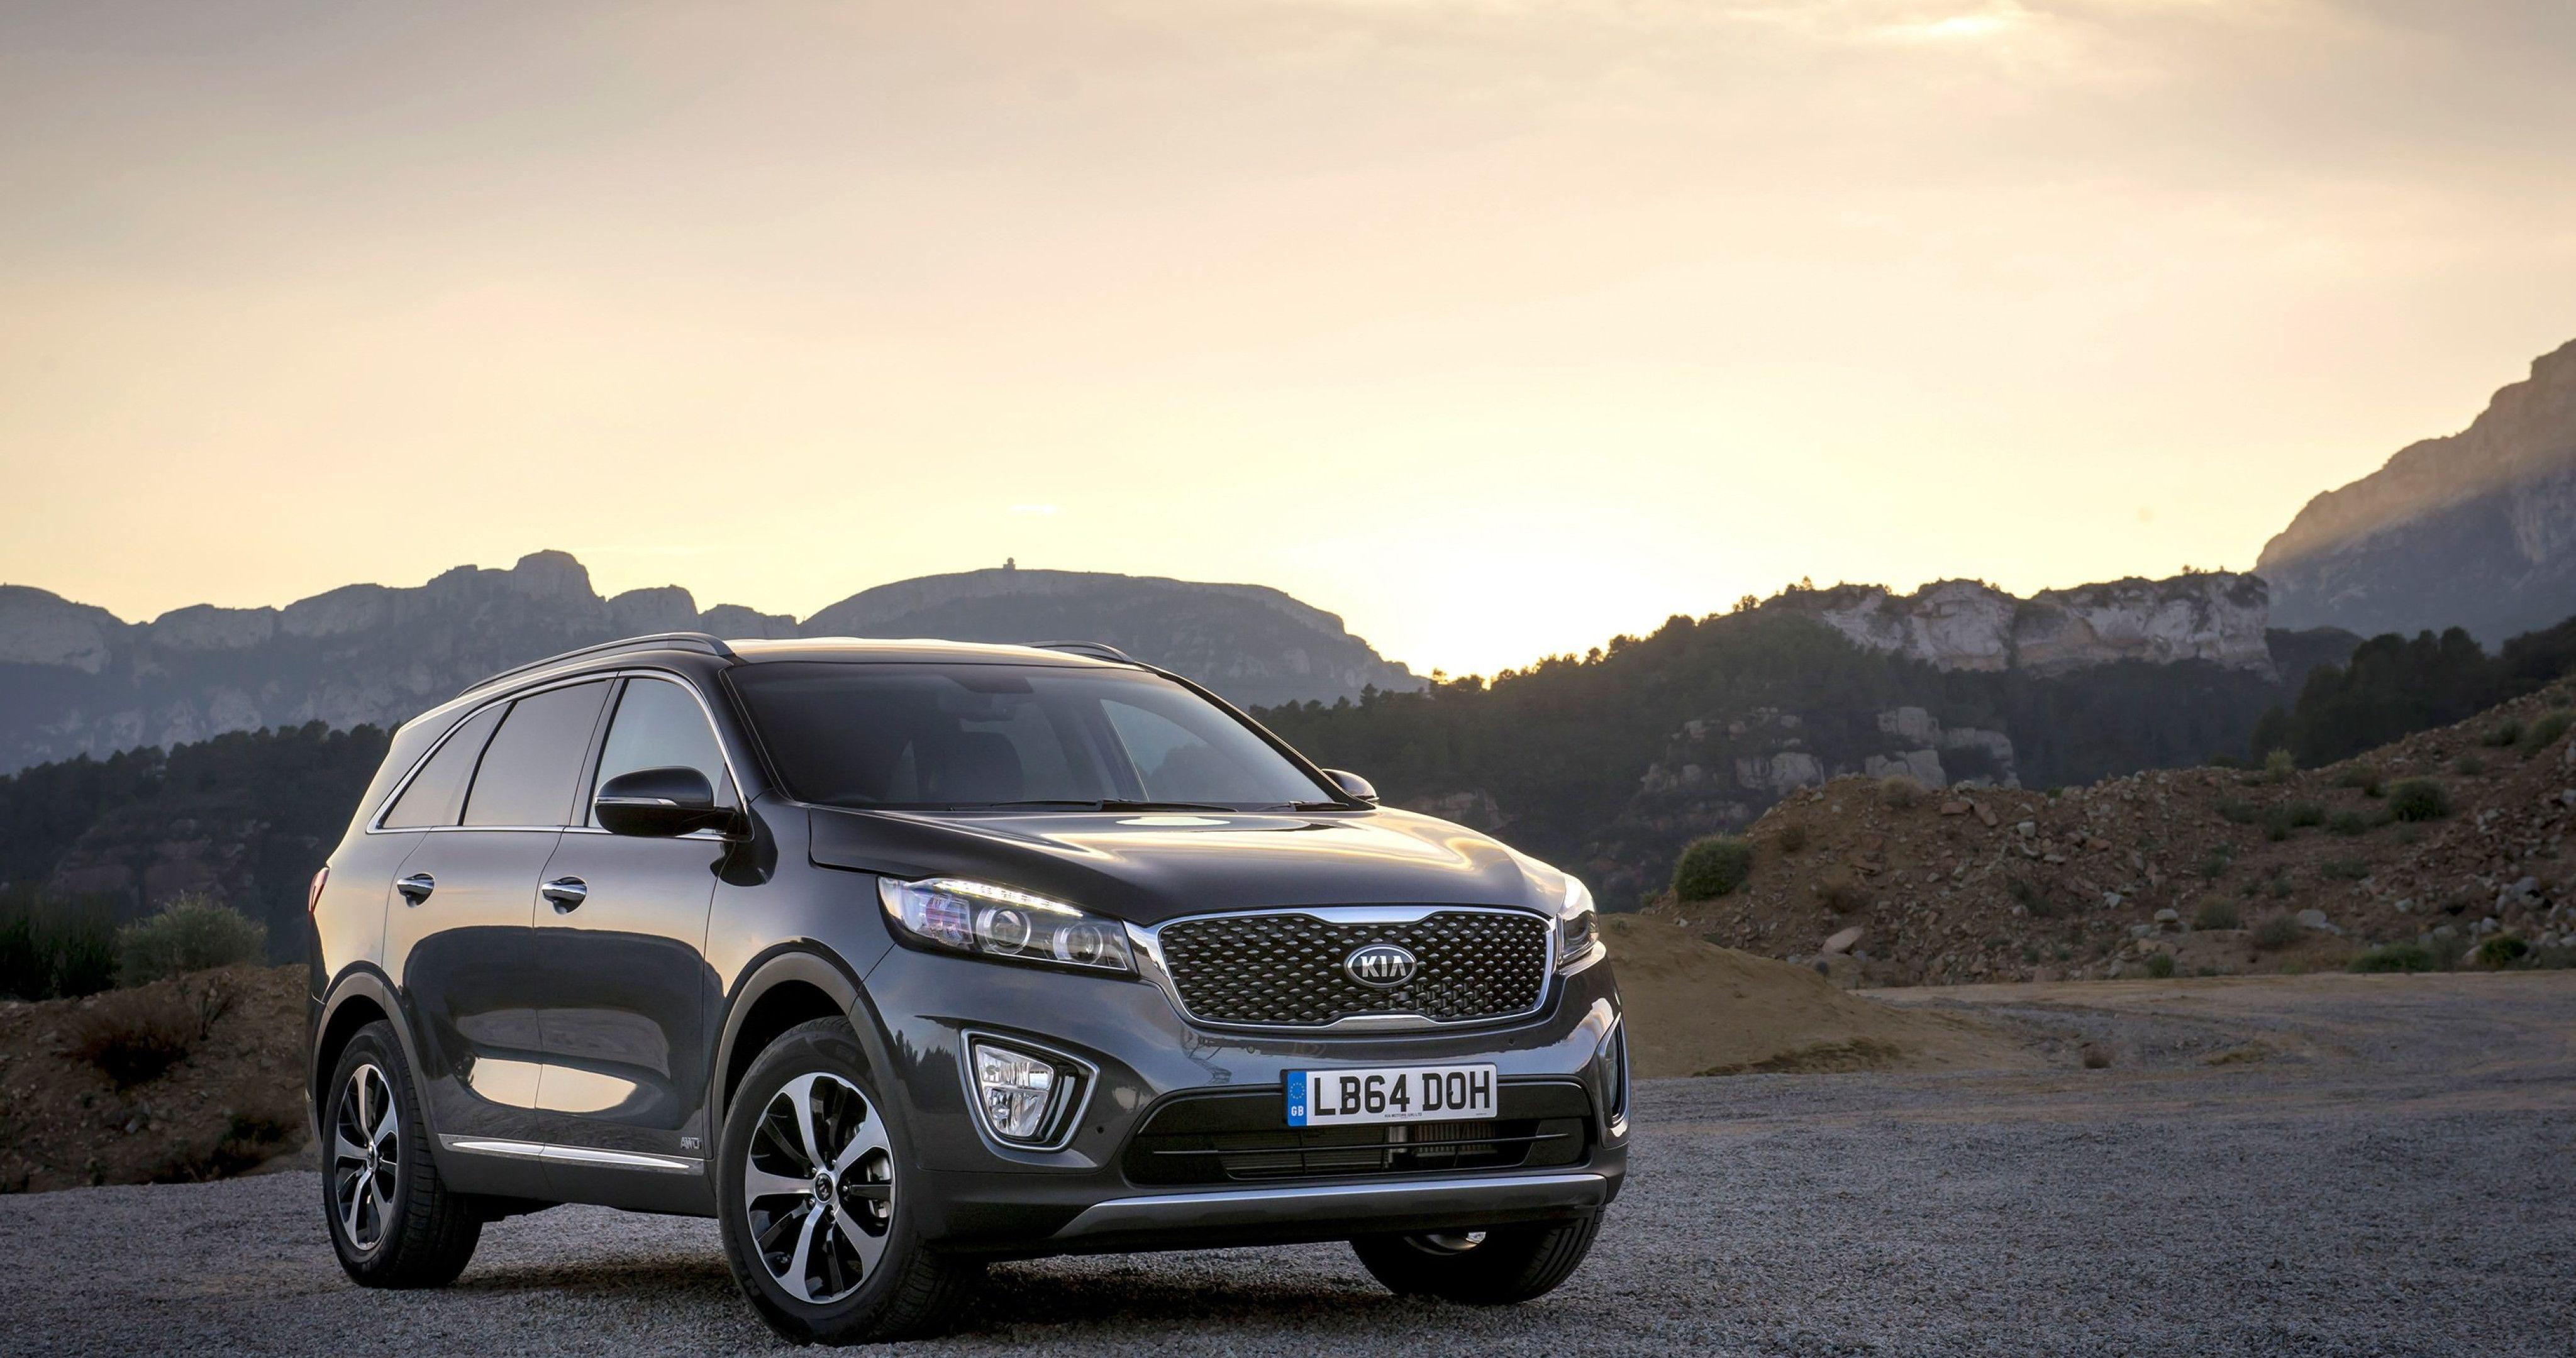 Kia Sorento 2015 4k UHD Wallpapers